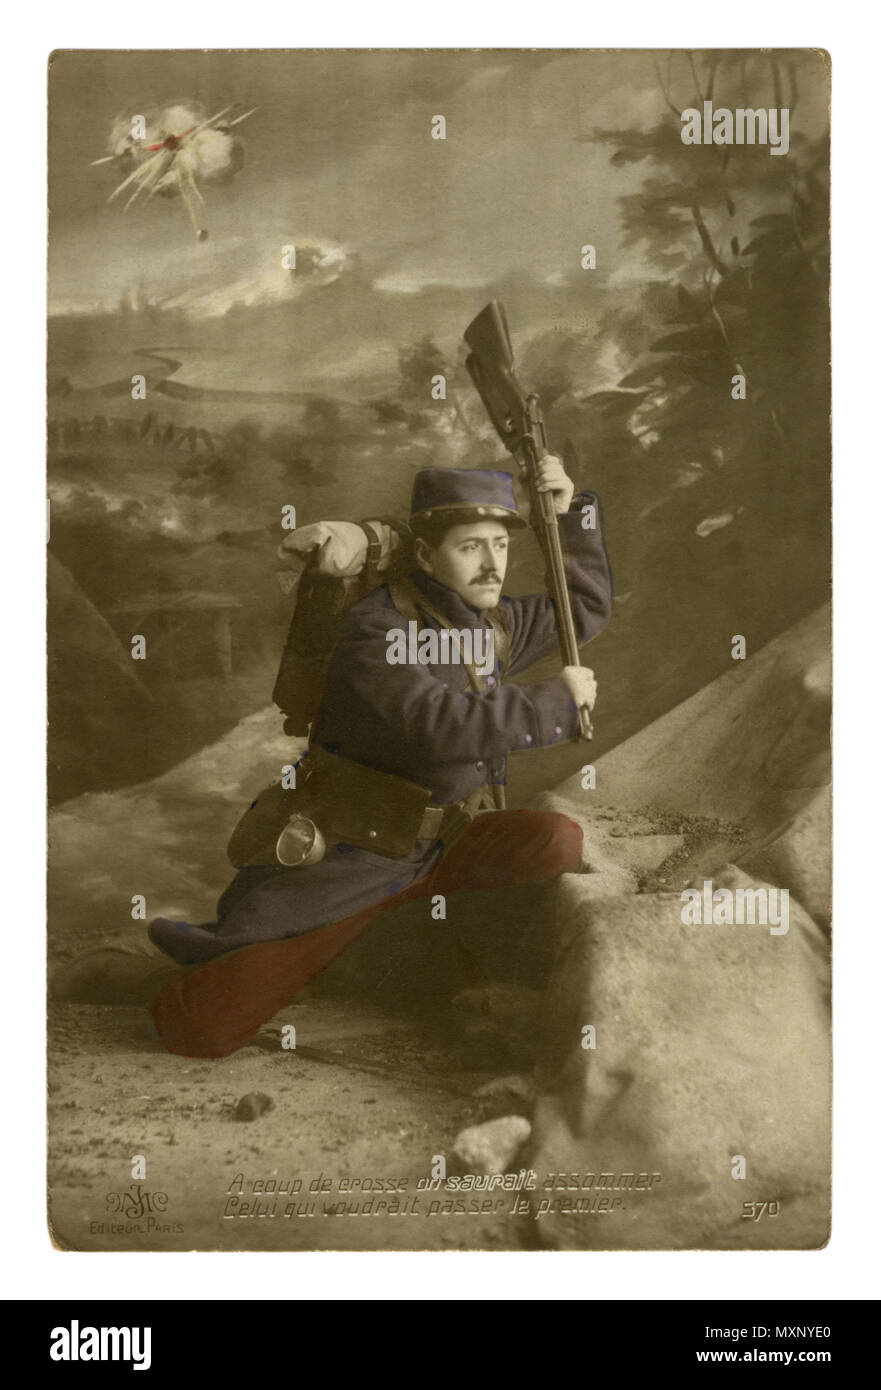 French historical photo postcard: The soldier ran out of ammo, he is ready to fight in hand-to-hand rifle as a club, but do not give up. world war one - Stock Image